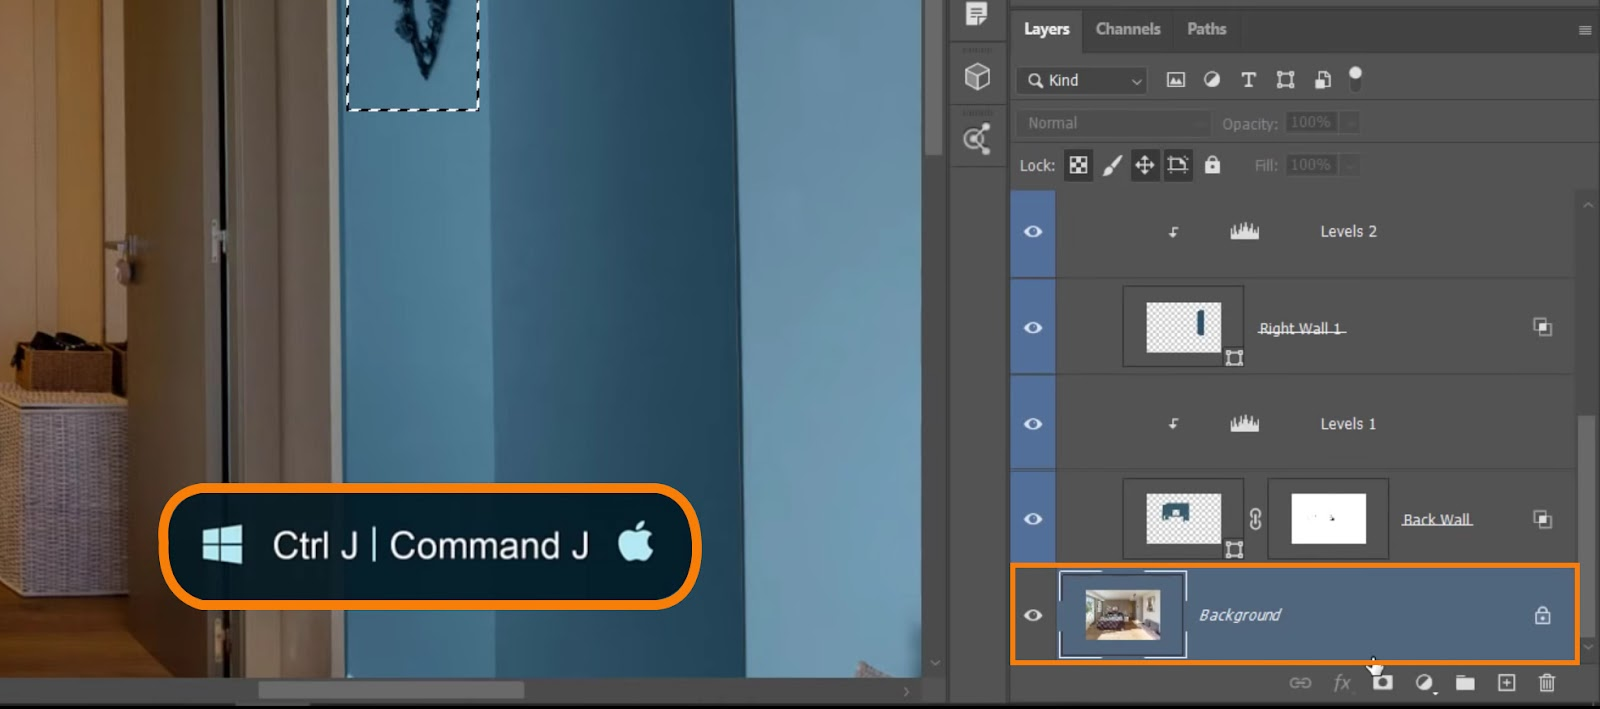 Go to the original Background layer and press Ctrl J (Windows) or Command J (macOS) to place wall decoration in its layer